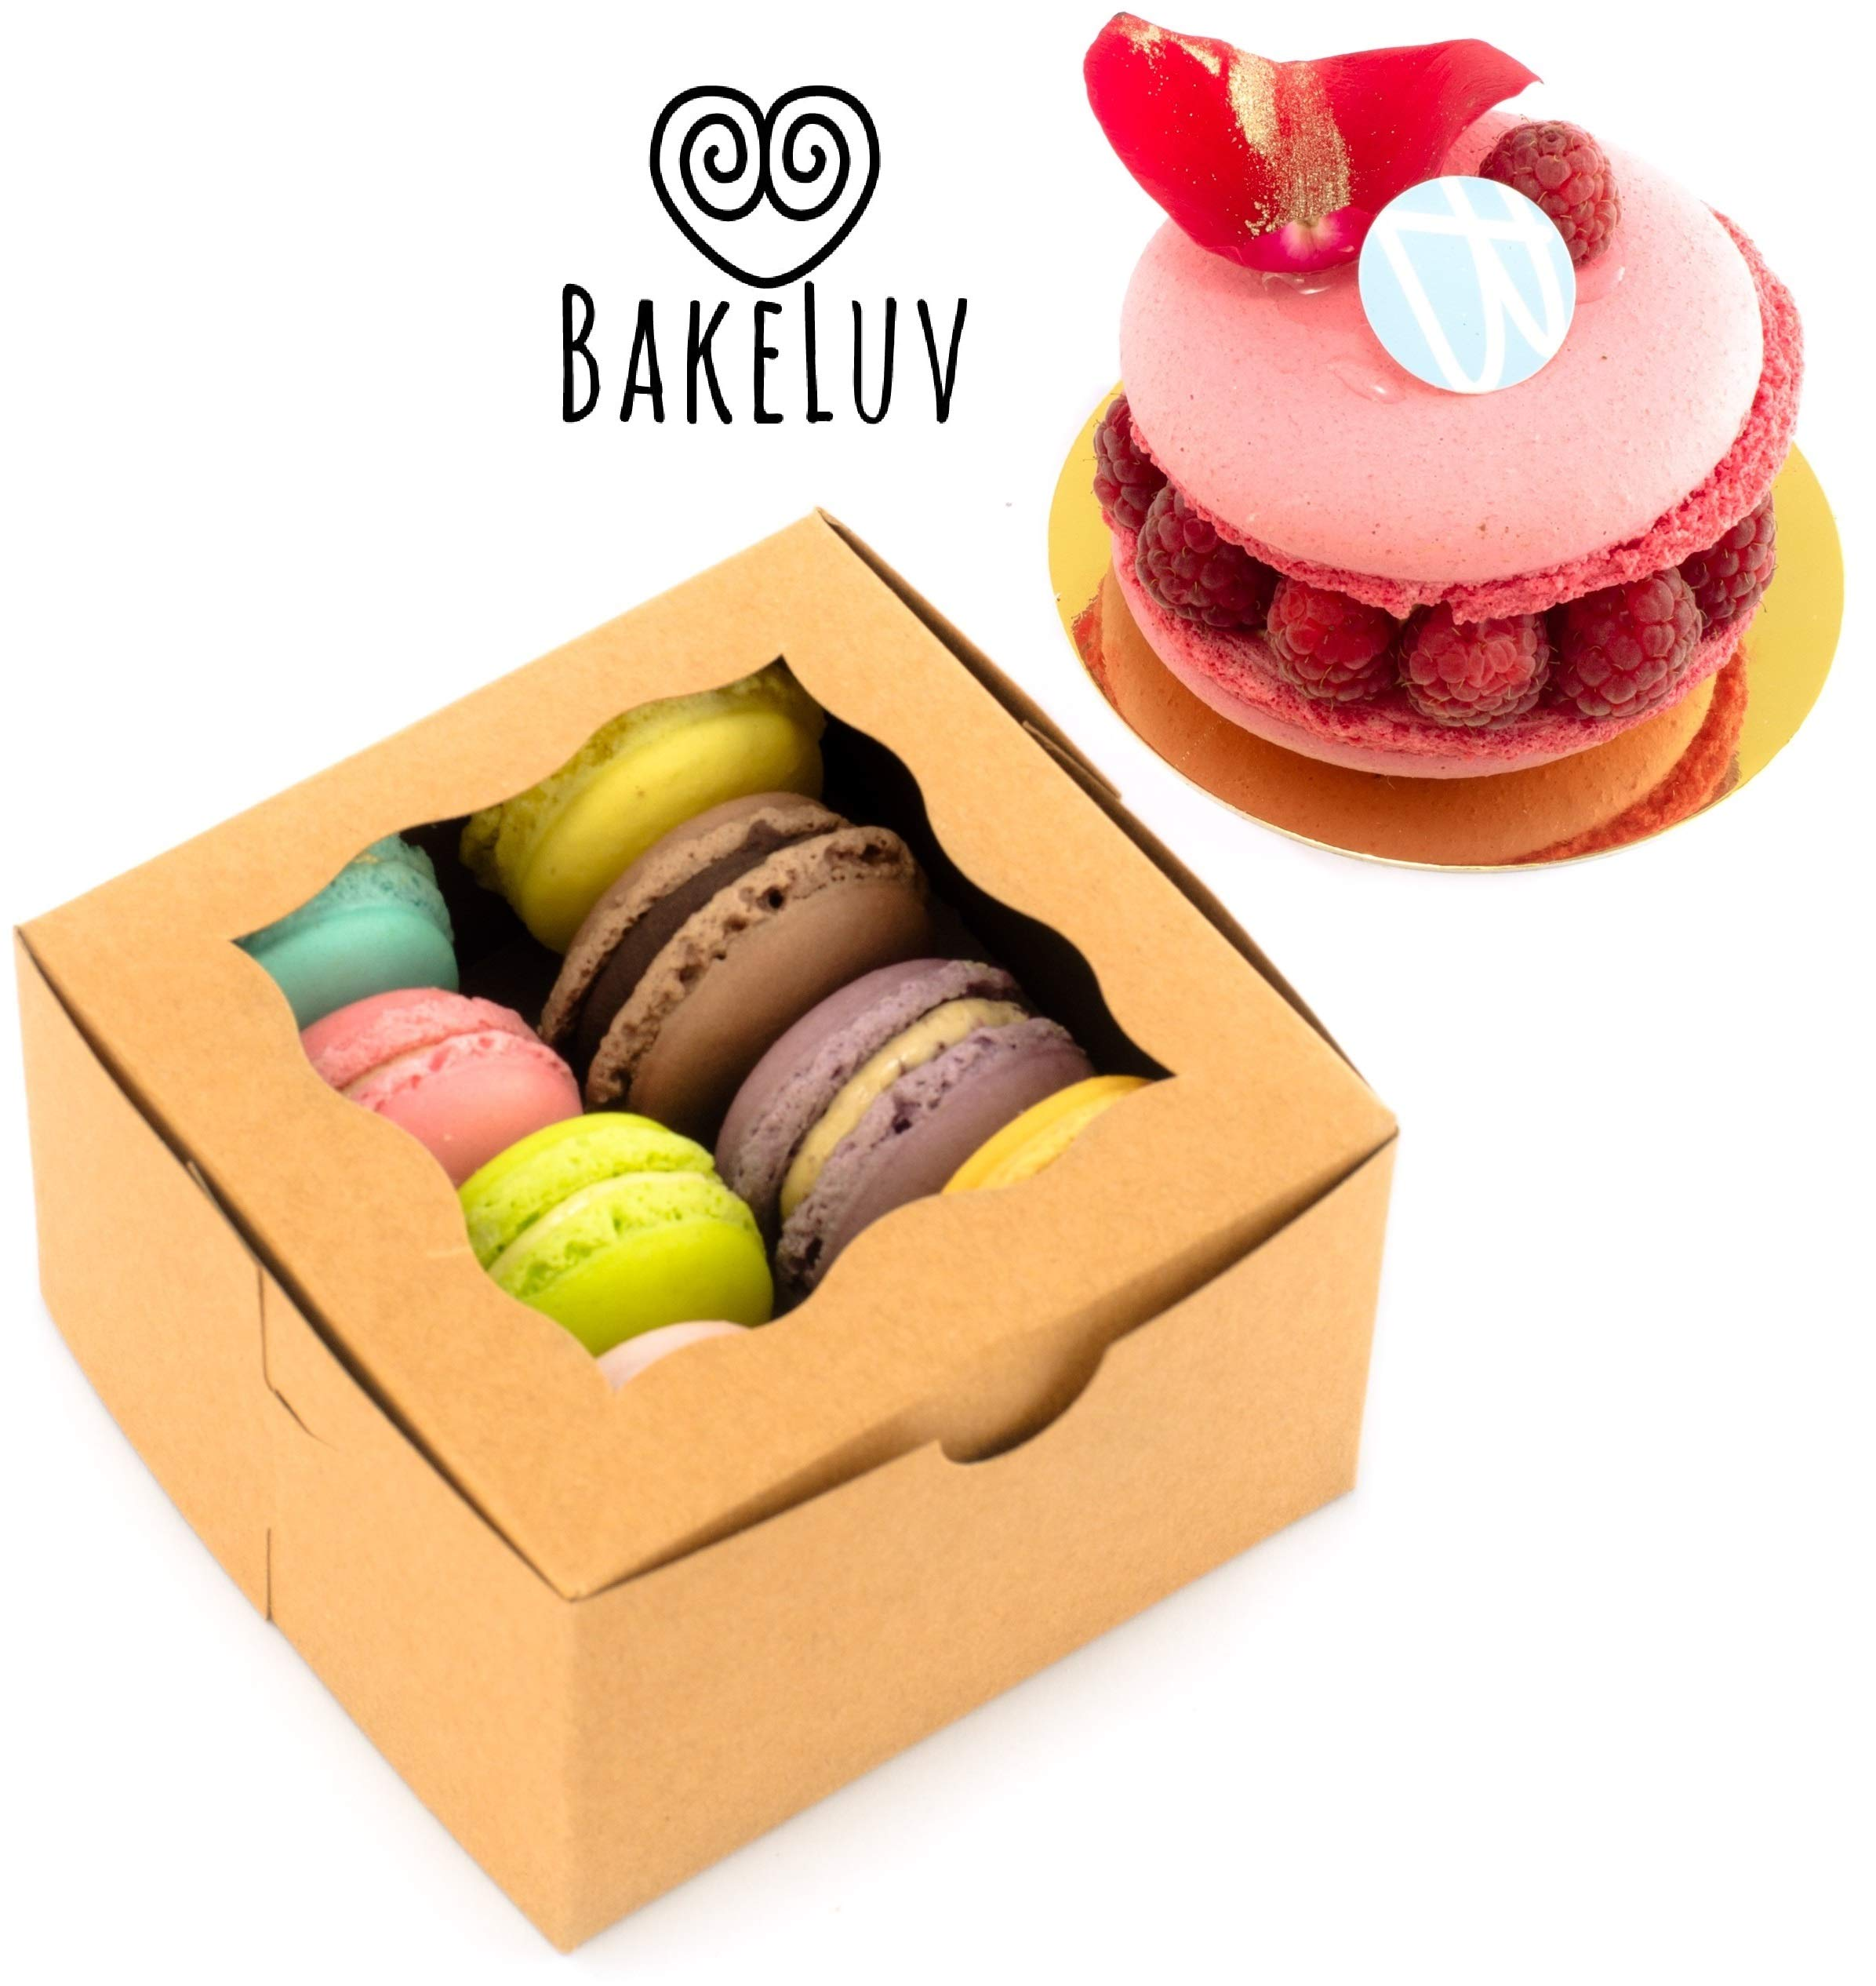 BakeLuv Brown Bakery Boxes with Window 4x4x2.5 inches | 50 Pack | Thick & Sturdy | Bakery Boxes, Mini Cake Boxes, Cookie Boxes with Window, Dessert, Pastry, Treat Boxes with Window by BakeLuv